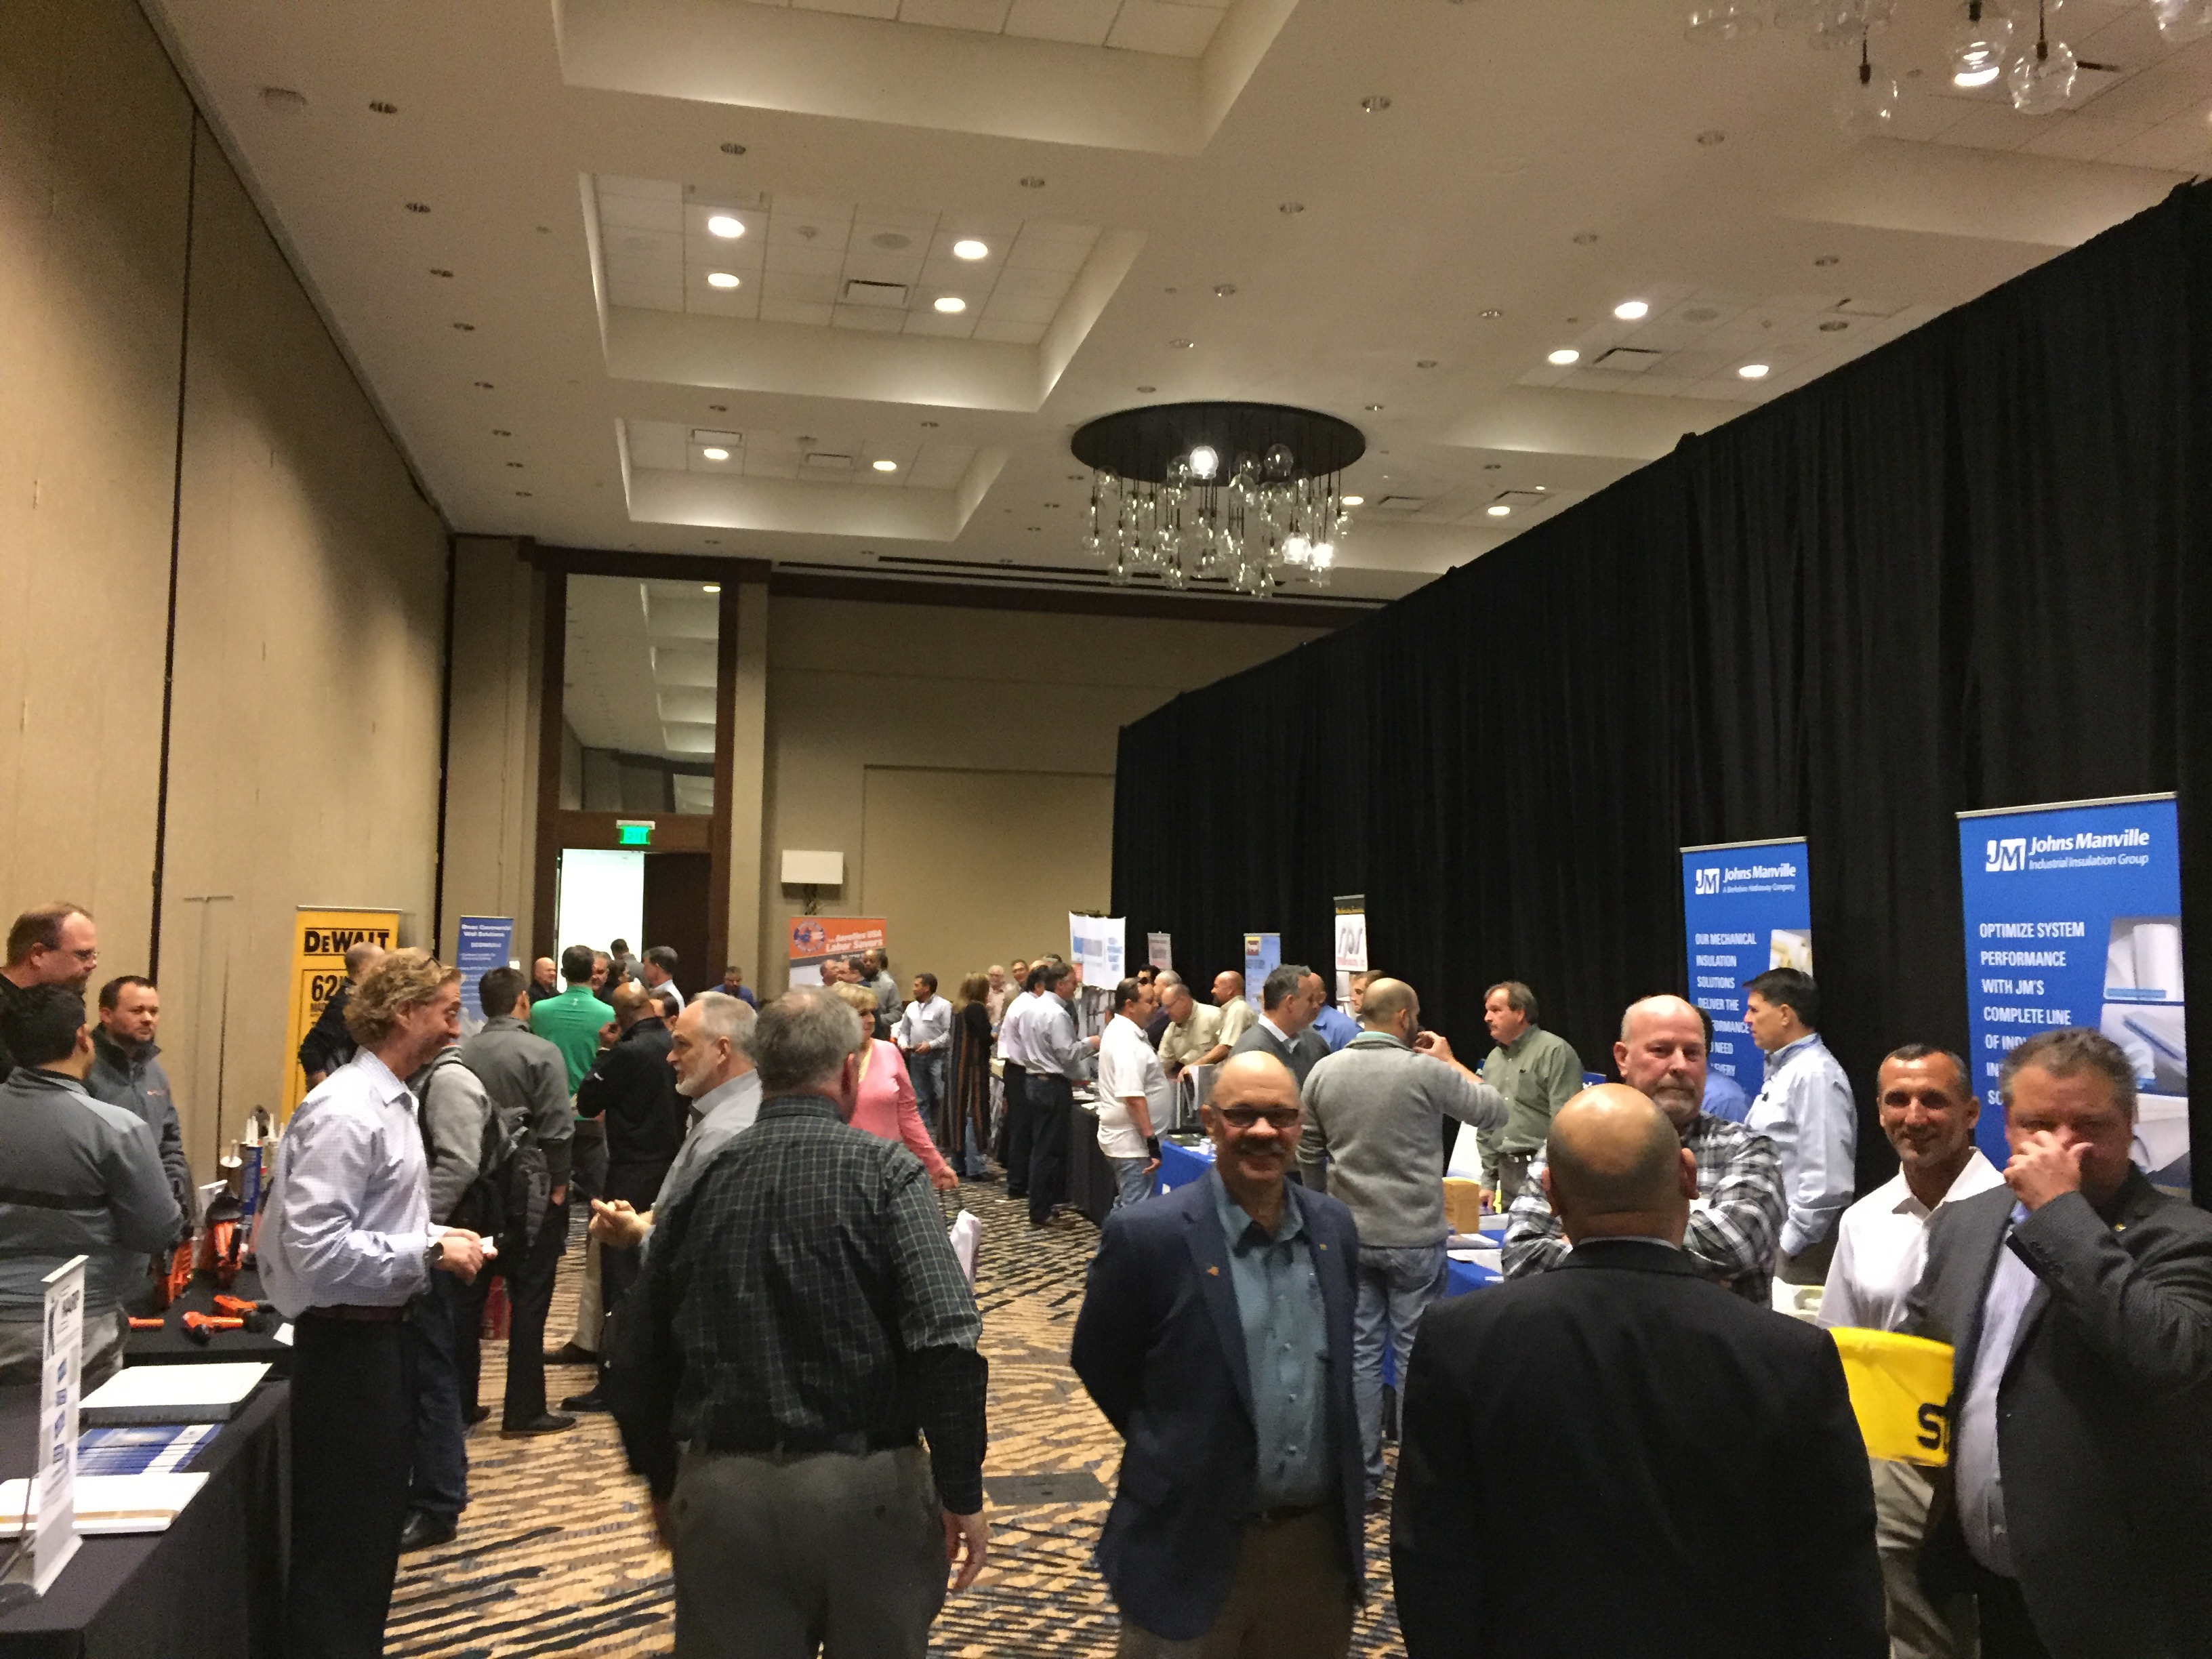 FBM Hosts Annual FBM University with Vendor Training and Tradeshow Event